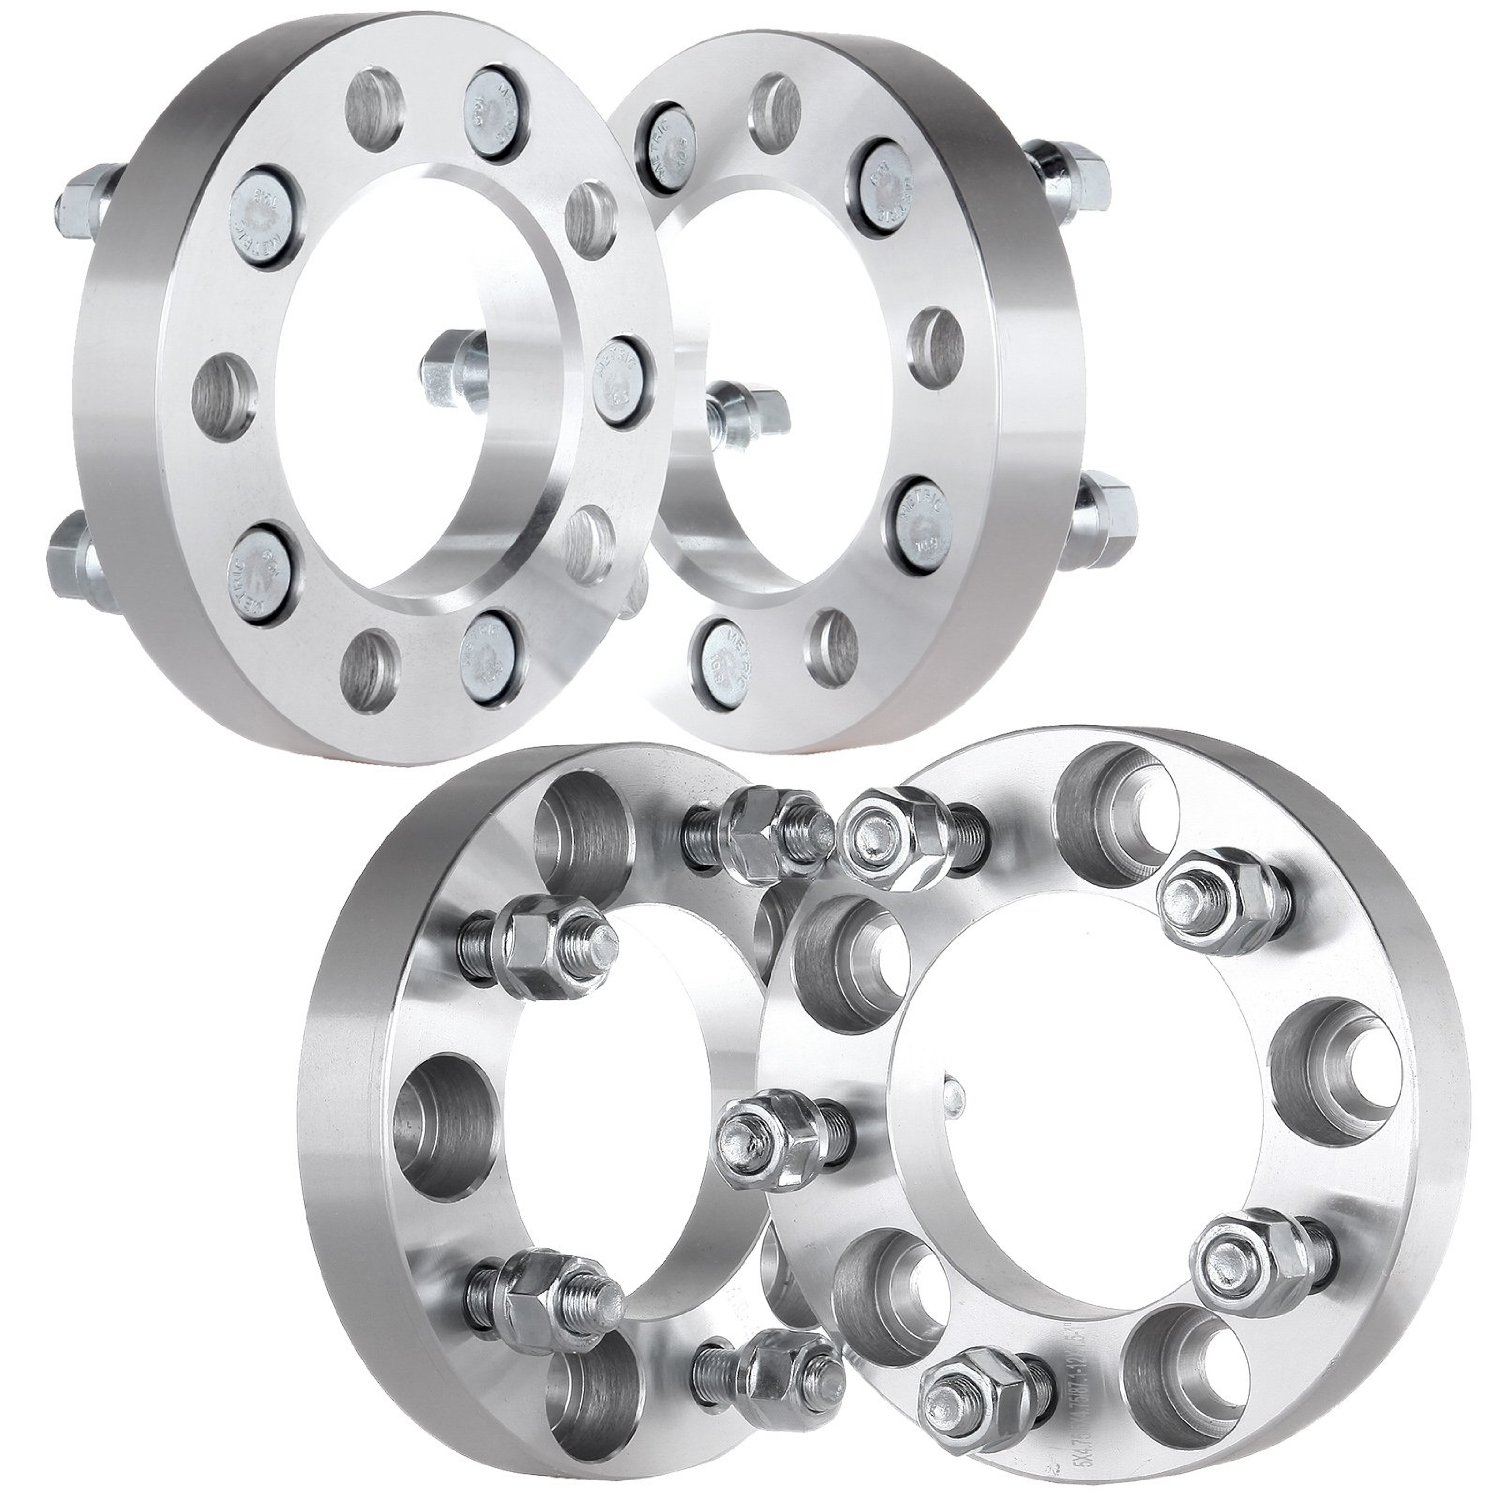 """Buy Scitoo 4PCS 1.5"""" 5x4.5 Wheel Spacers Adapters 5 Lug"""